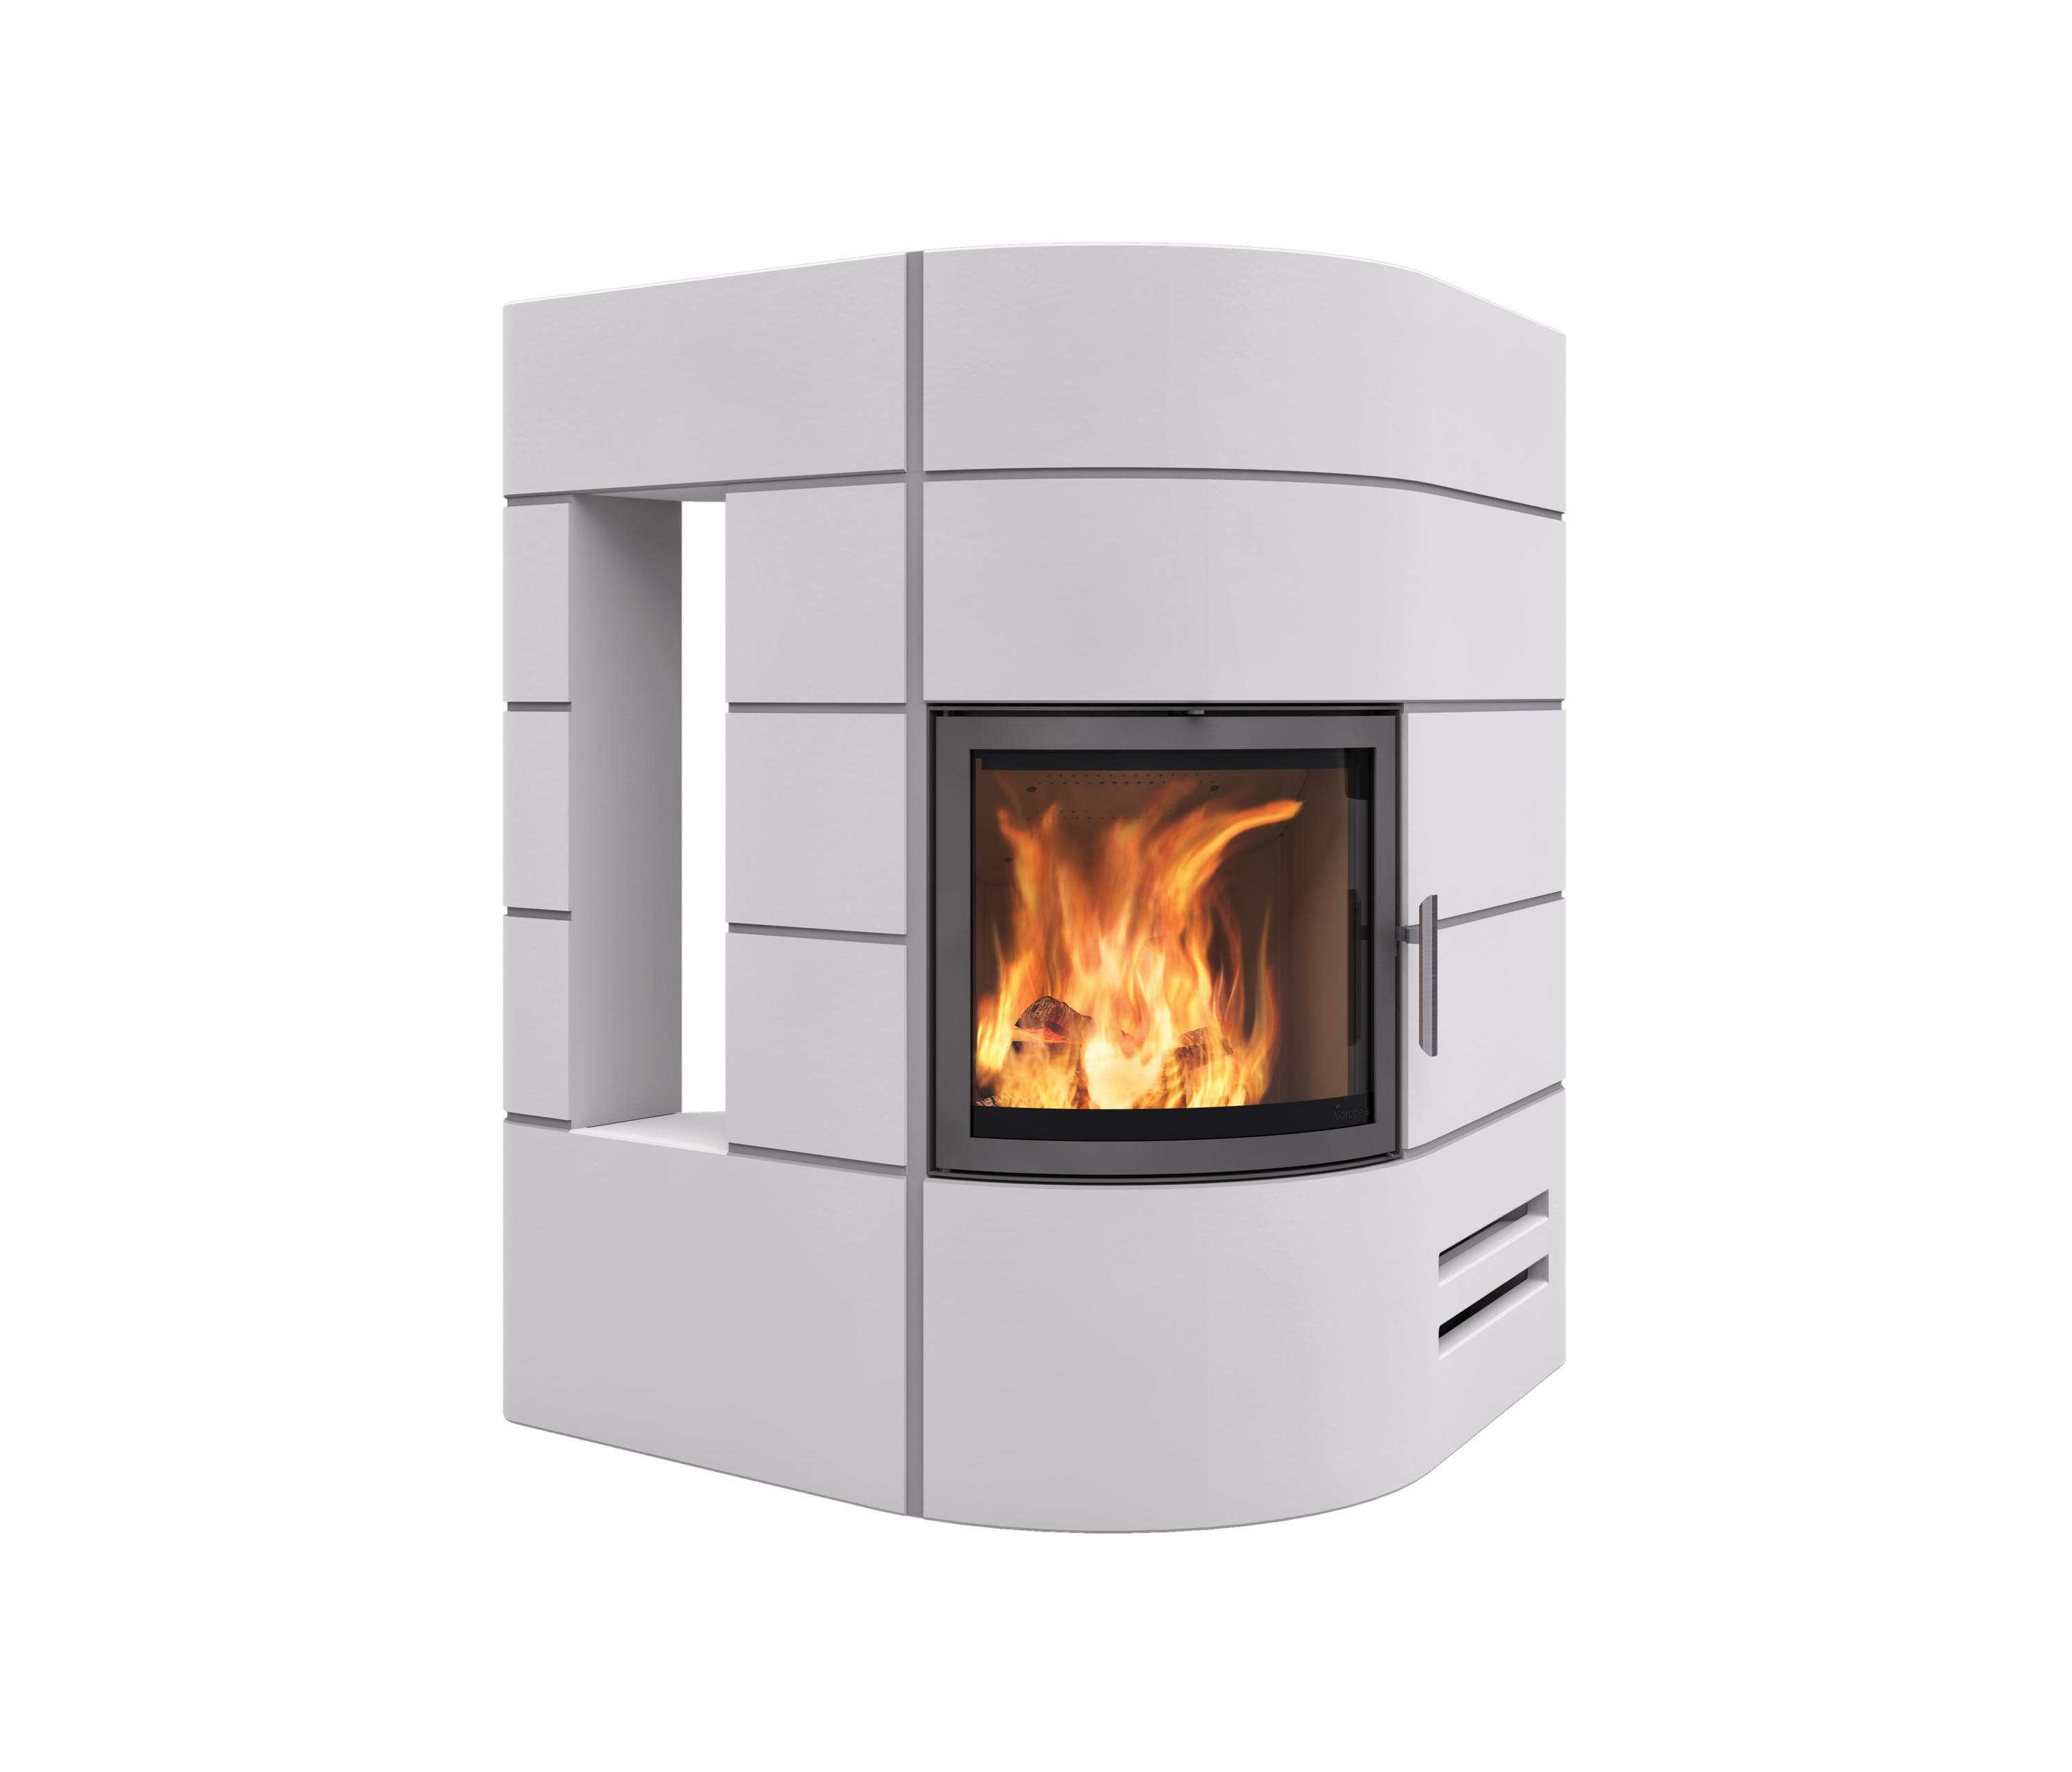 AMSTERDAM STRAIGHT - Wood burning stoves from Nordpeis | Architonic